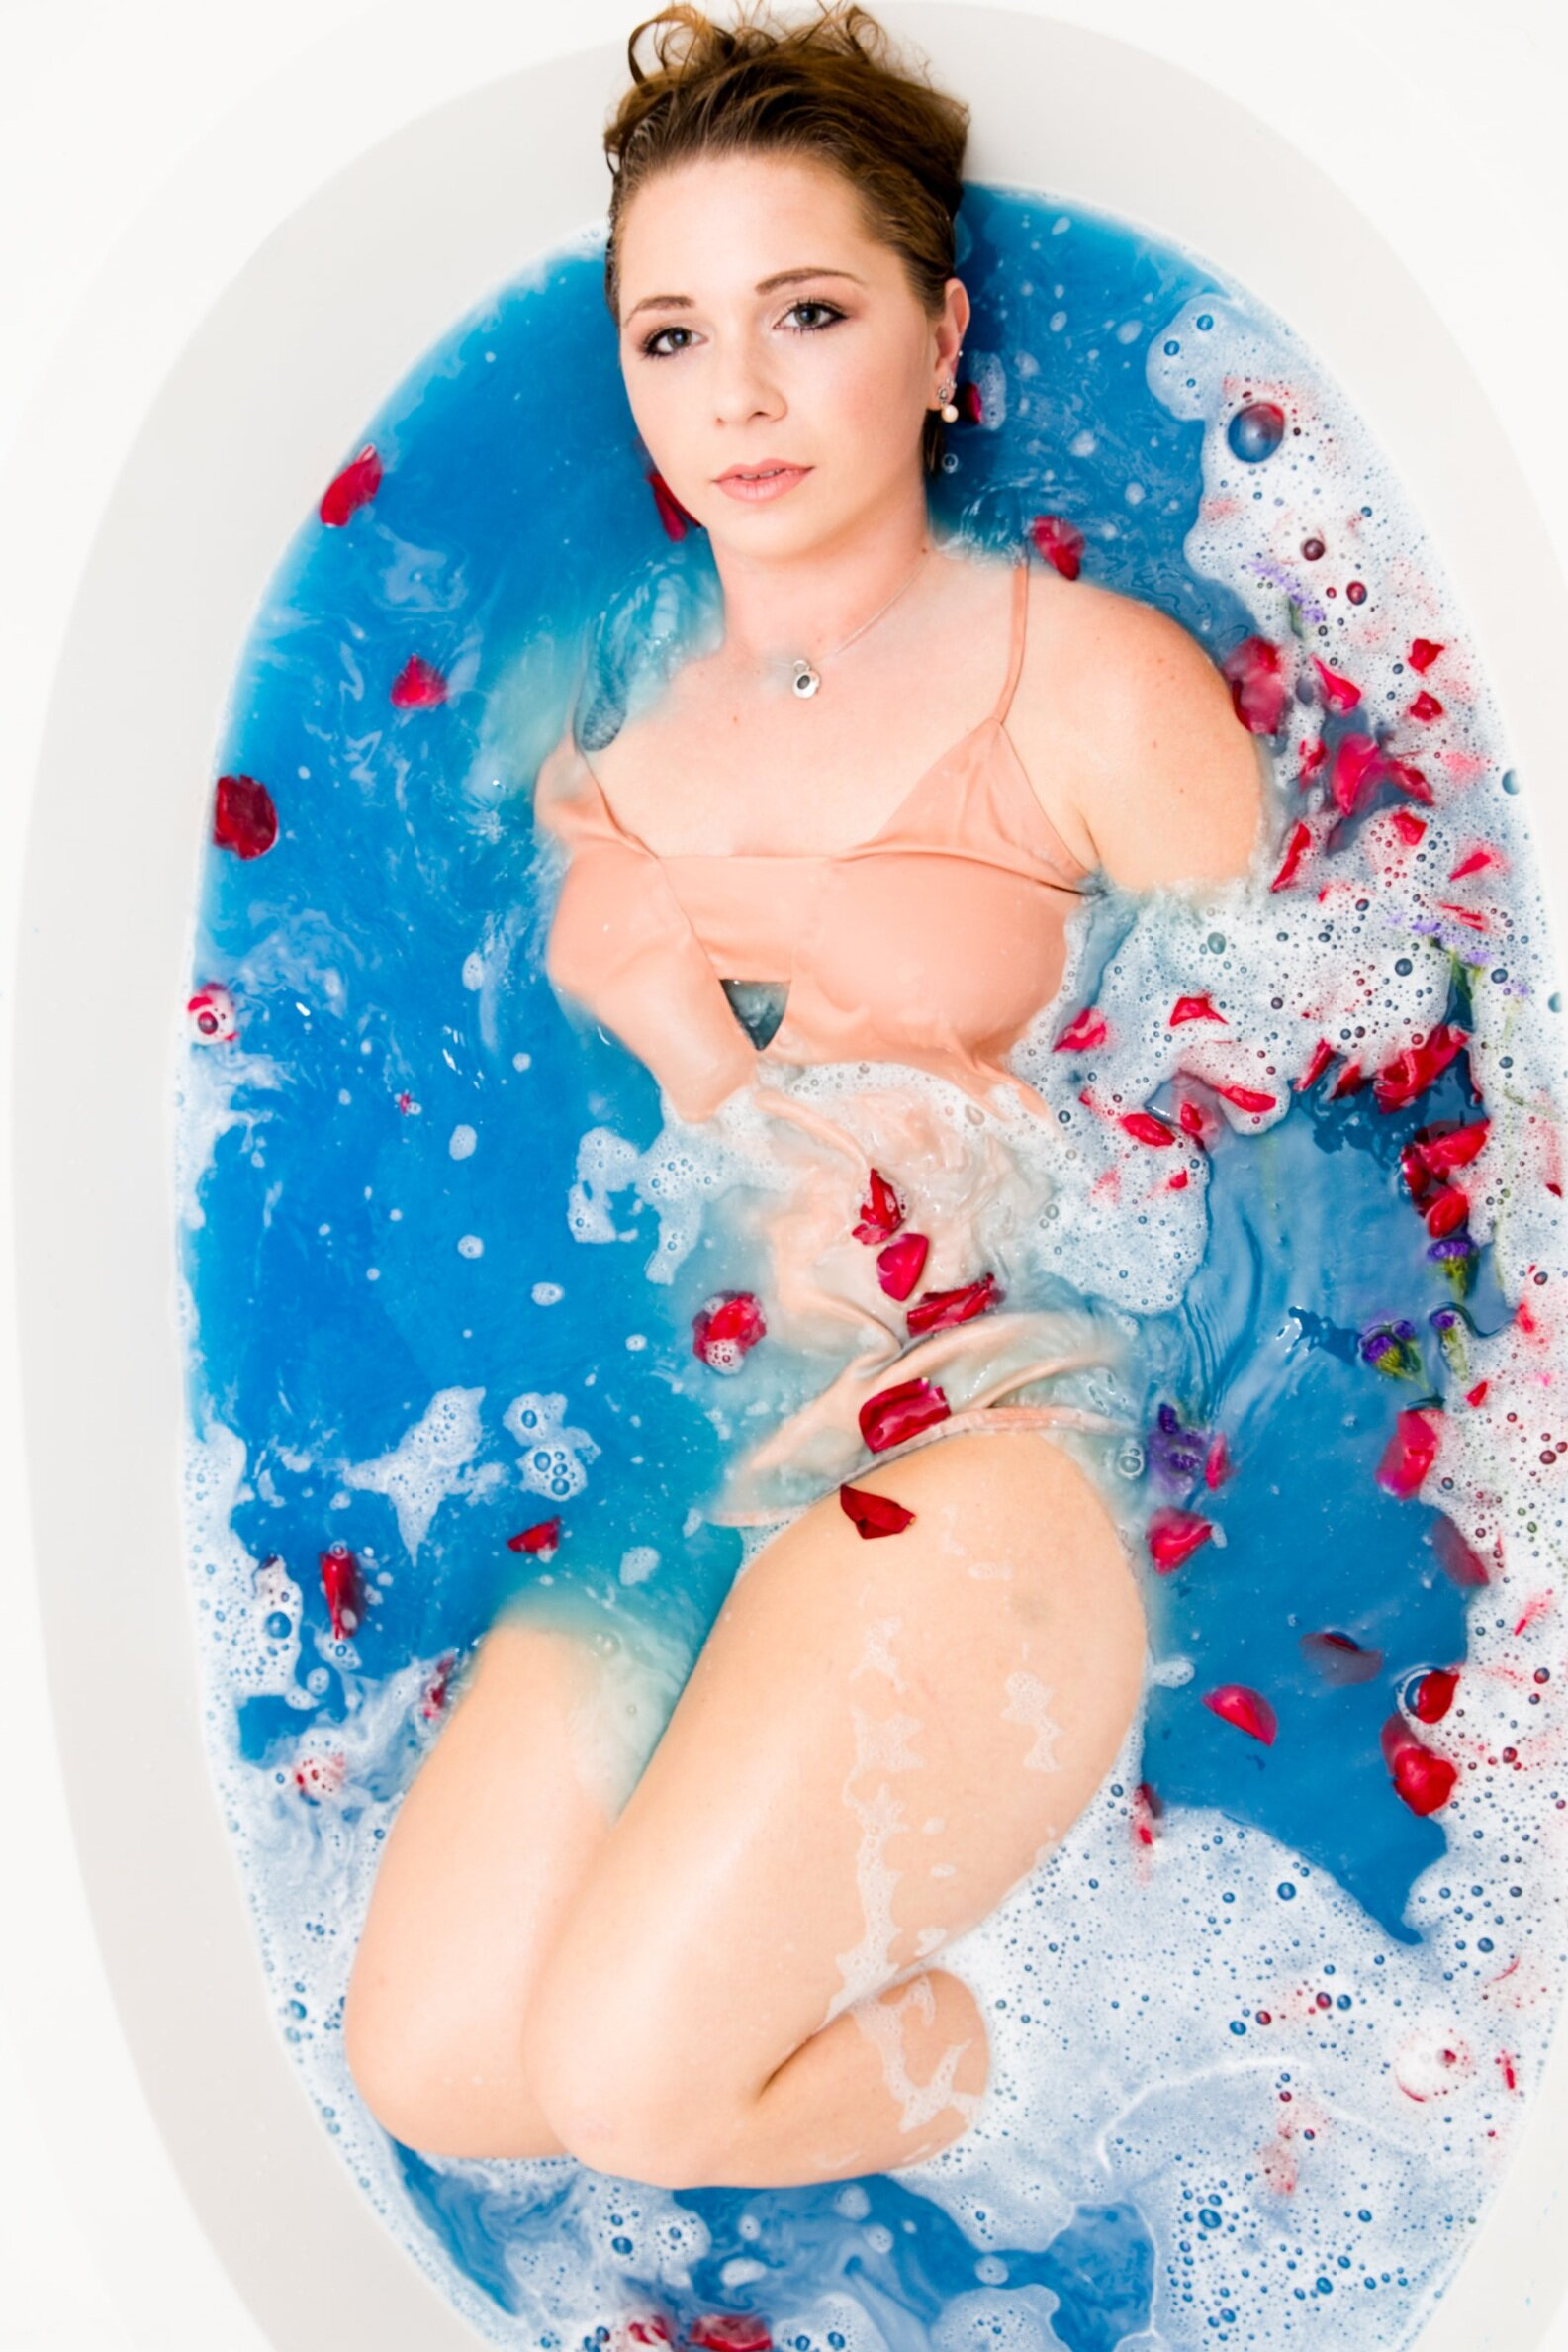 blue bath with red rose petals